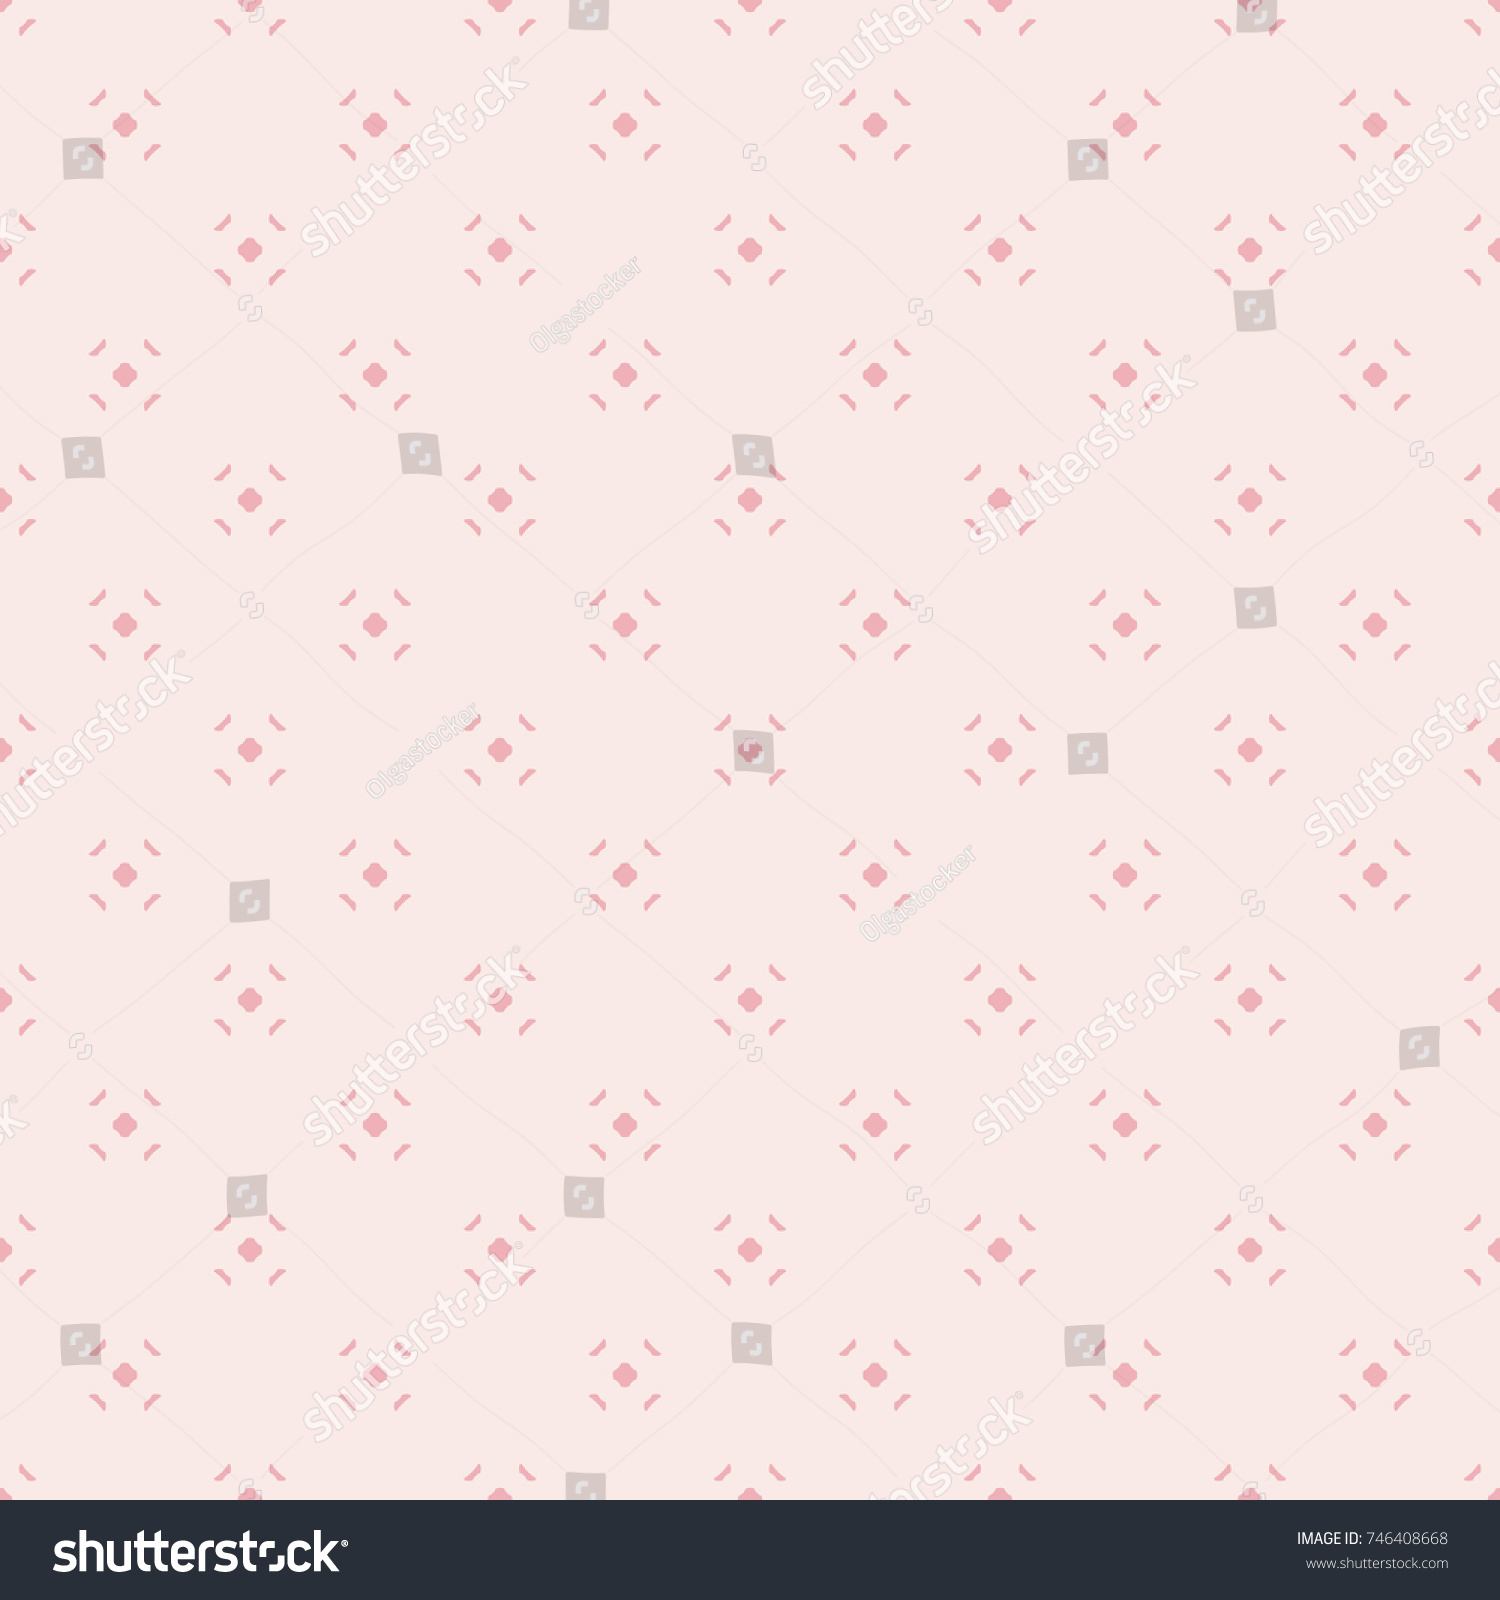 Cute Vintage Minimalist Pattern For Girls In Trendy Pink Color Palette Vector Abstract Geometric Seamless